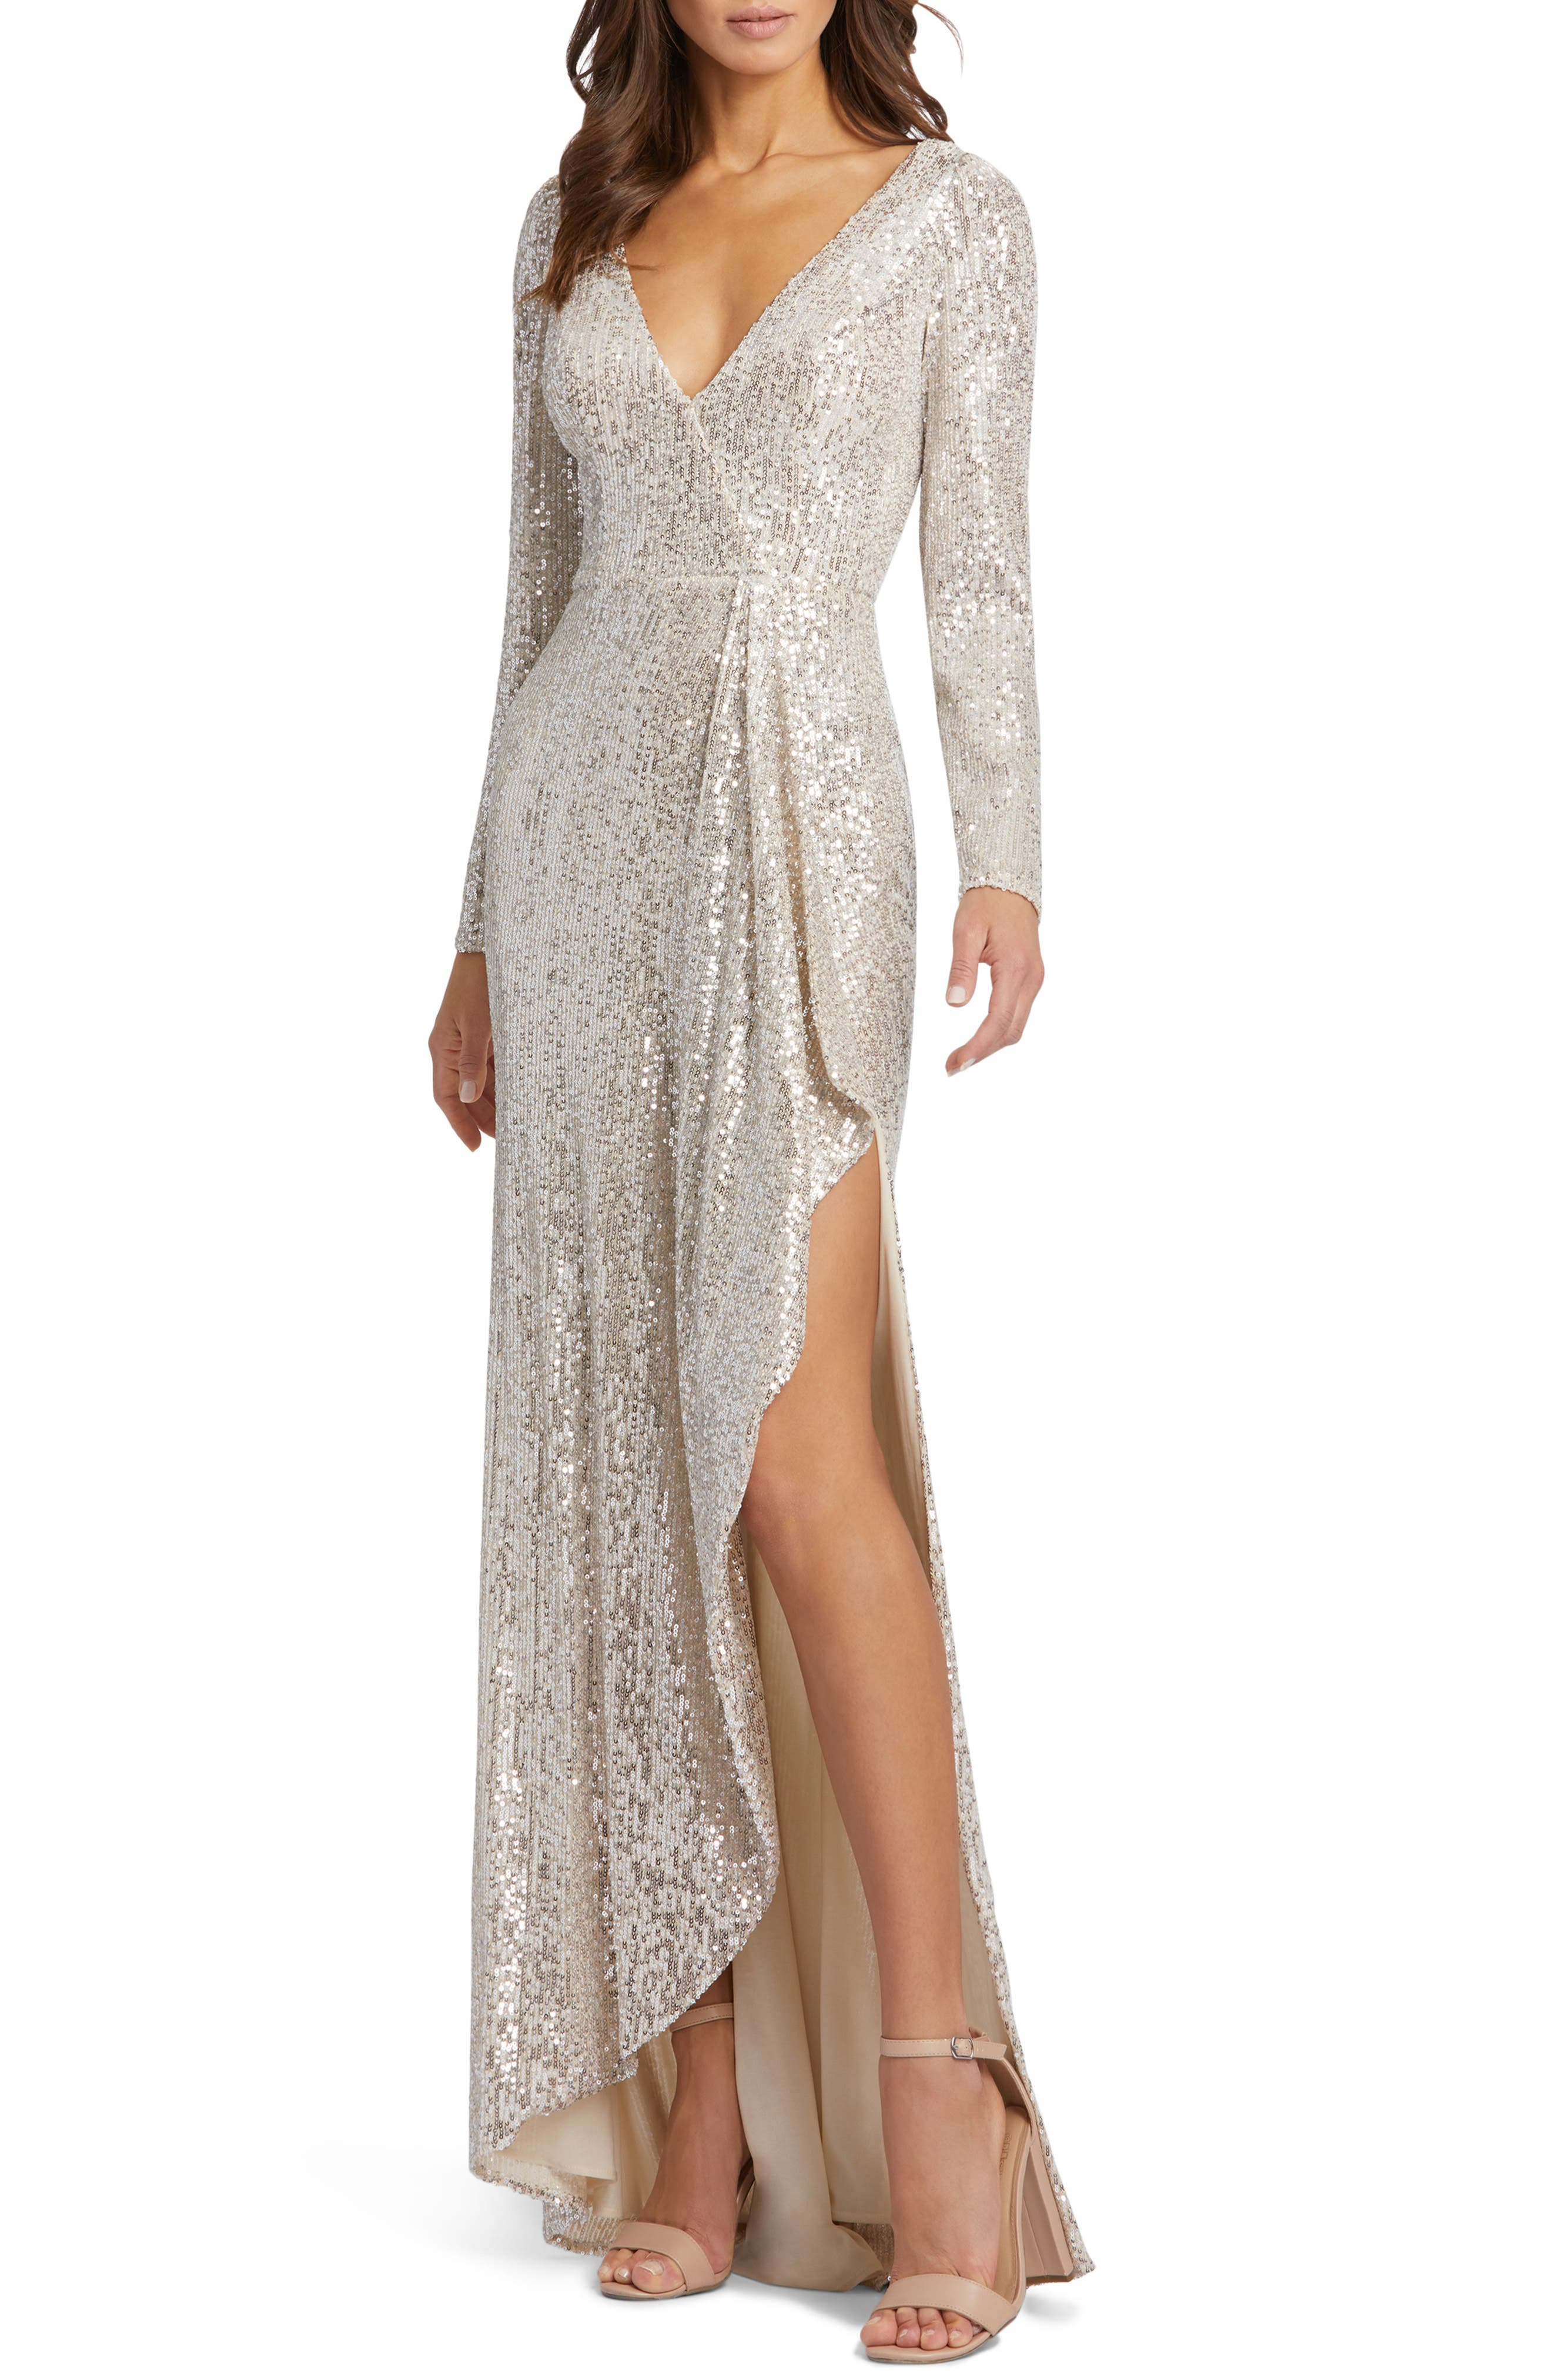 70s Prom, Formal, Evening, Party Dresses Ieena for Mac Duggal Long Sleeve Sequin Wrap Gown Size 16 in Silver at Nordstrom $398.00 AT vintagedancer.com